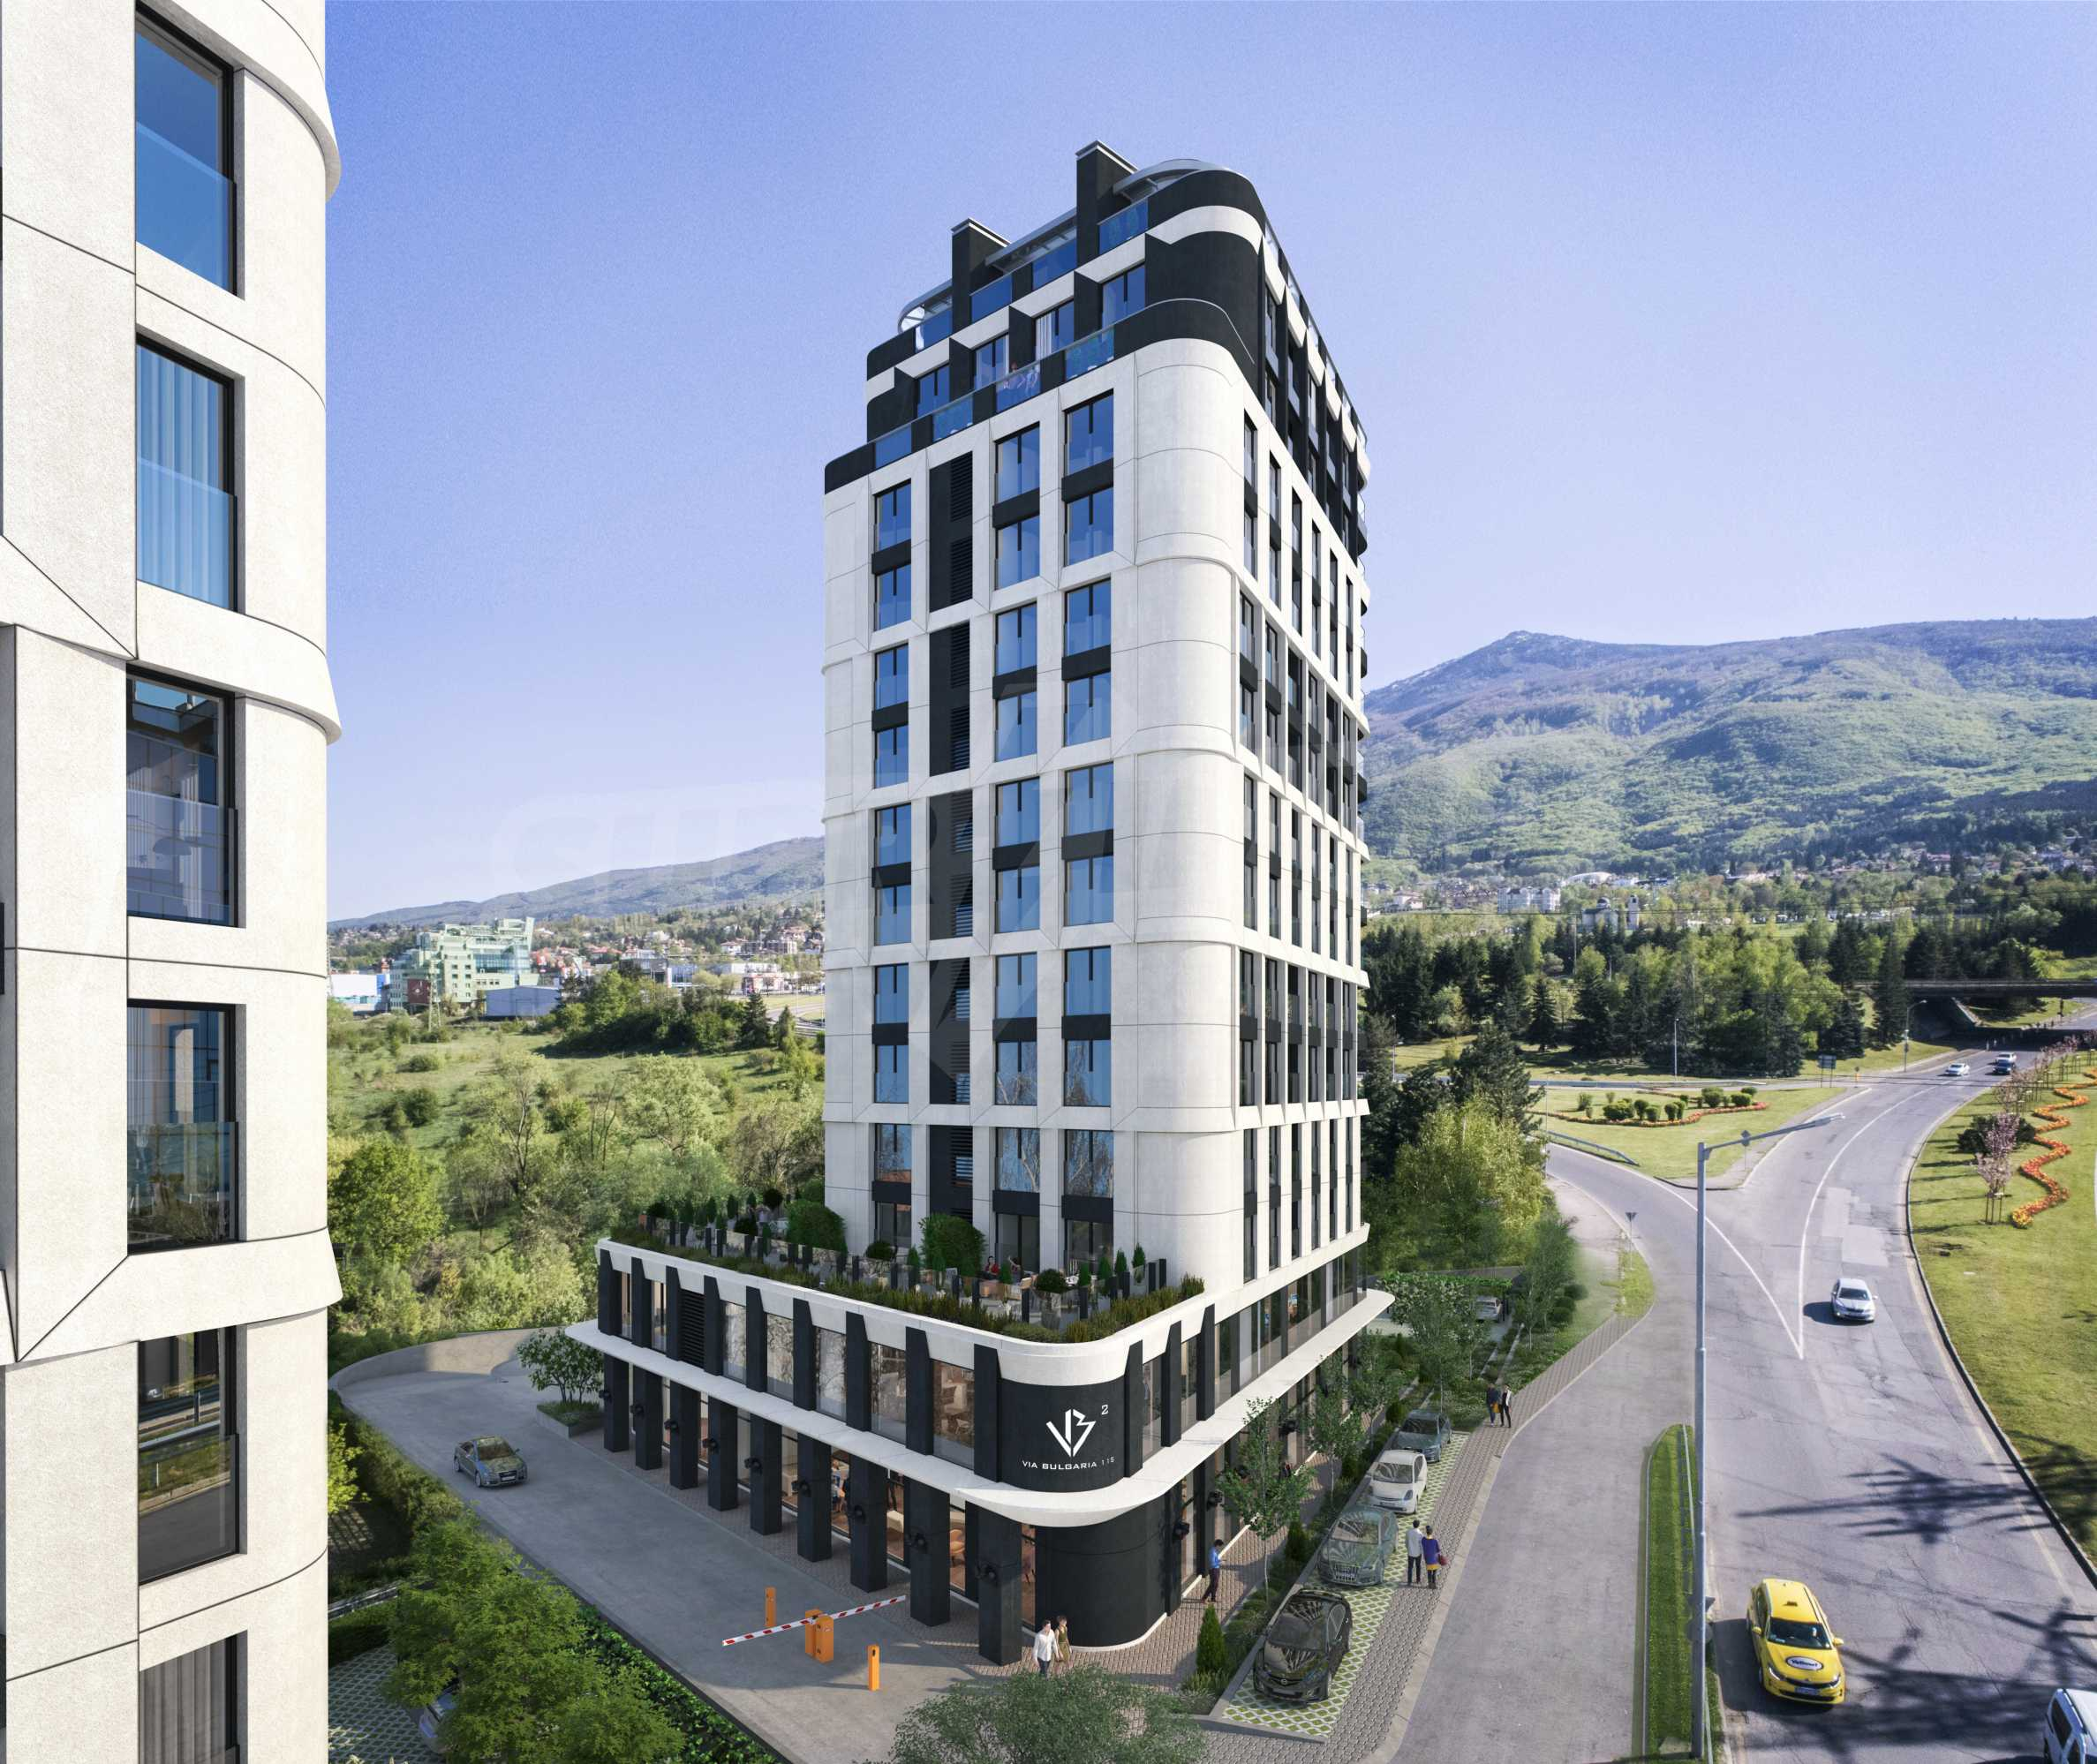 Via Bulgaria 2 - new exclusive residential building on Bulgaria Blvd. 1